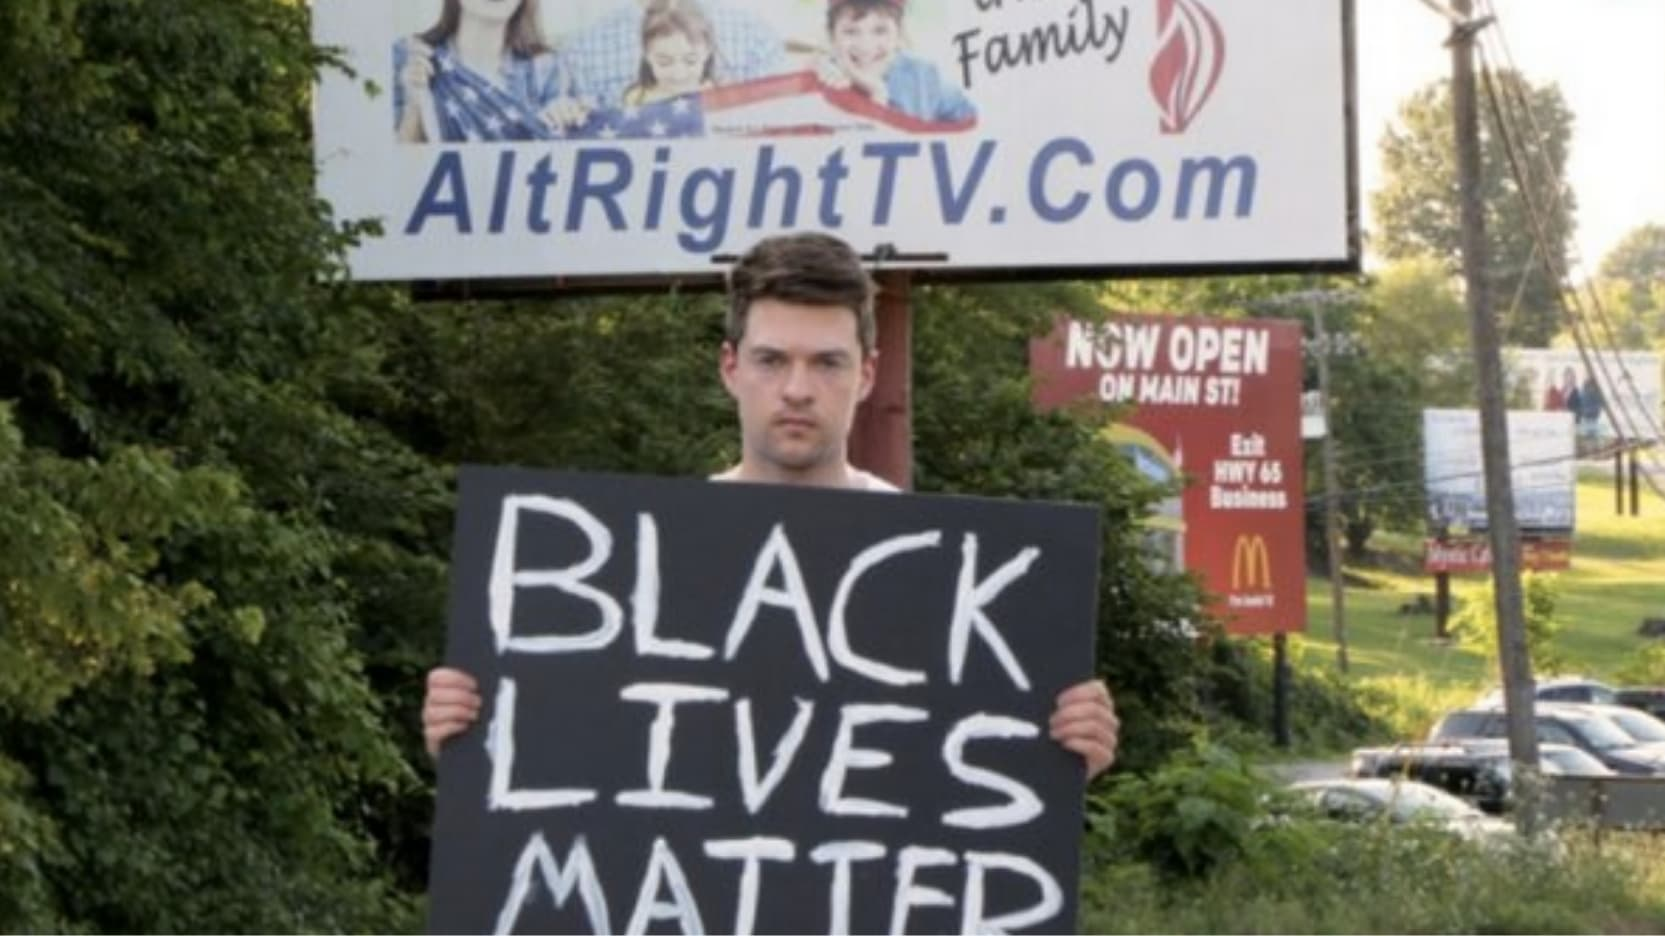 Arkansas man repeatedly harassed for holding BLM sign in viral video